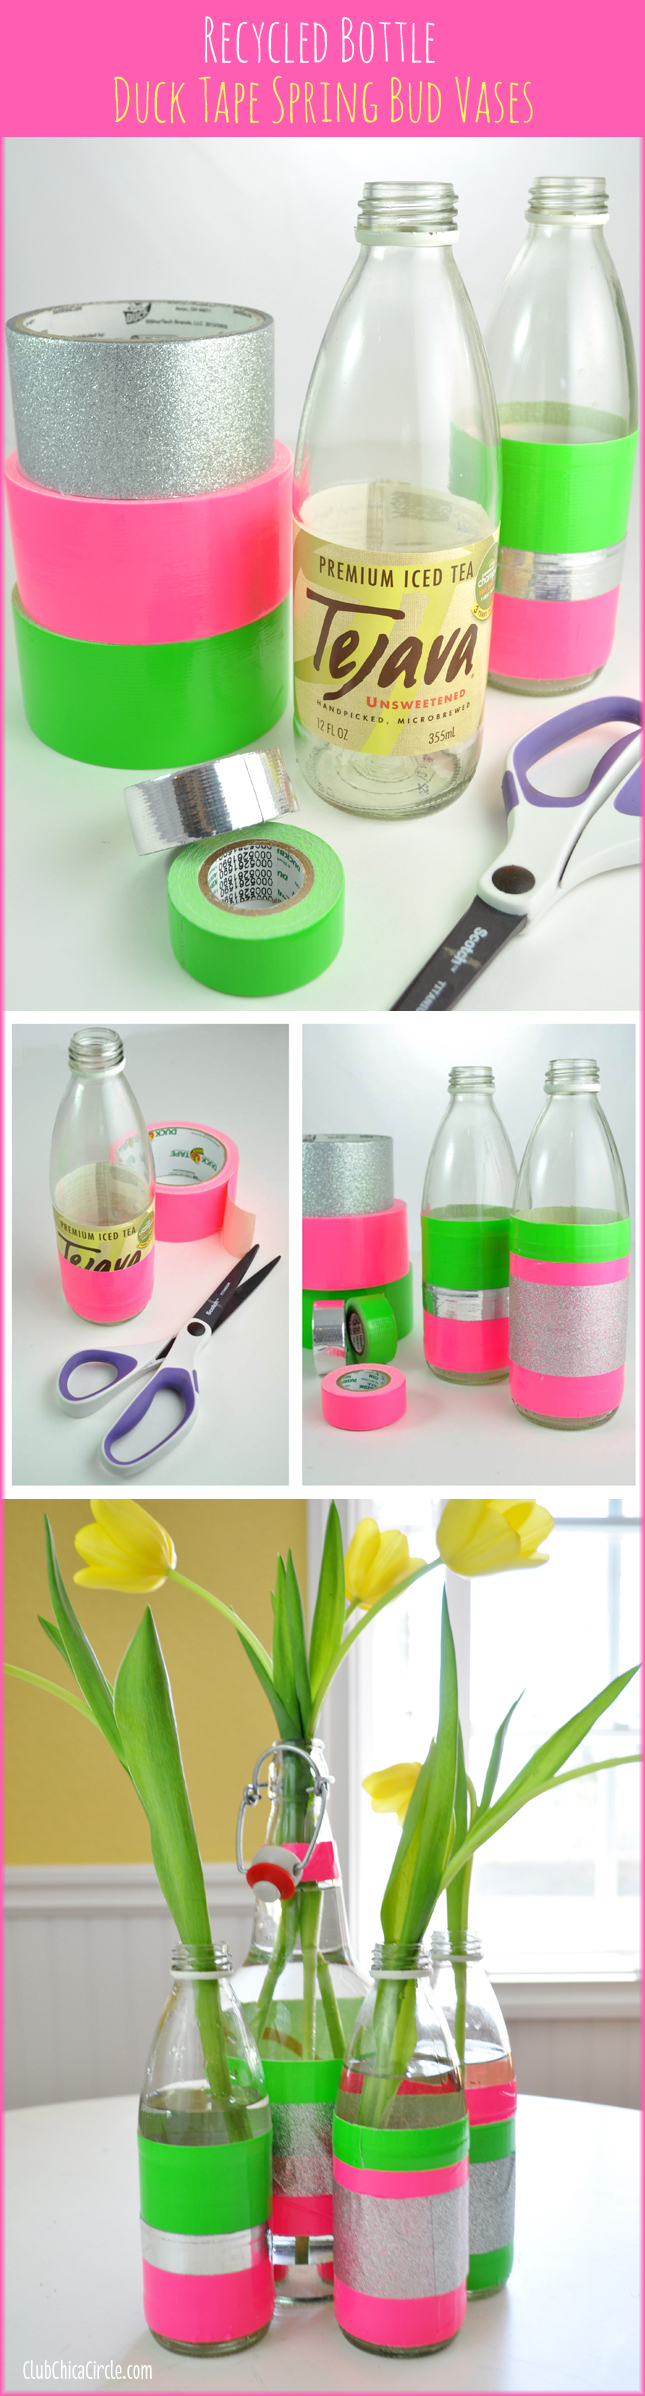 Spring bud vases easy craft idea with Duck Tape